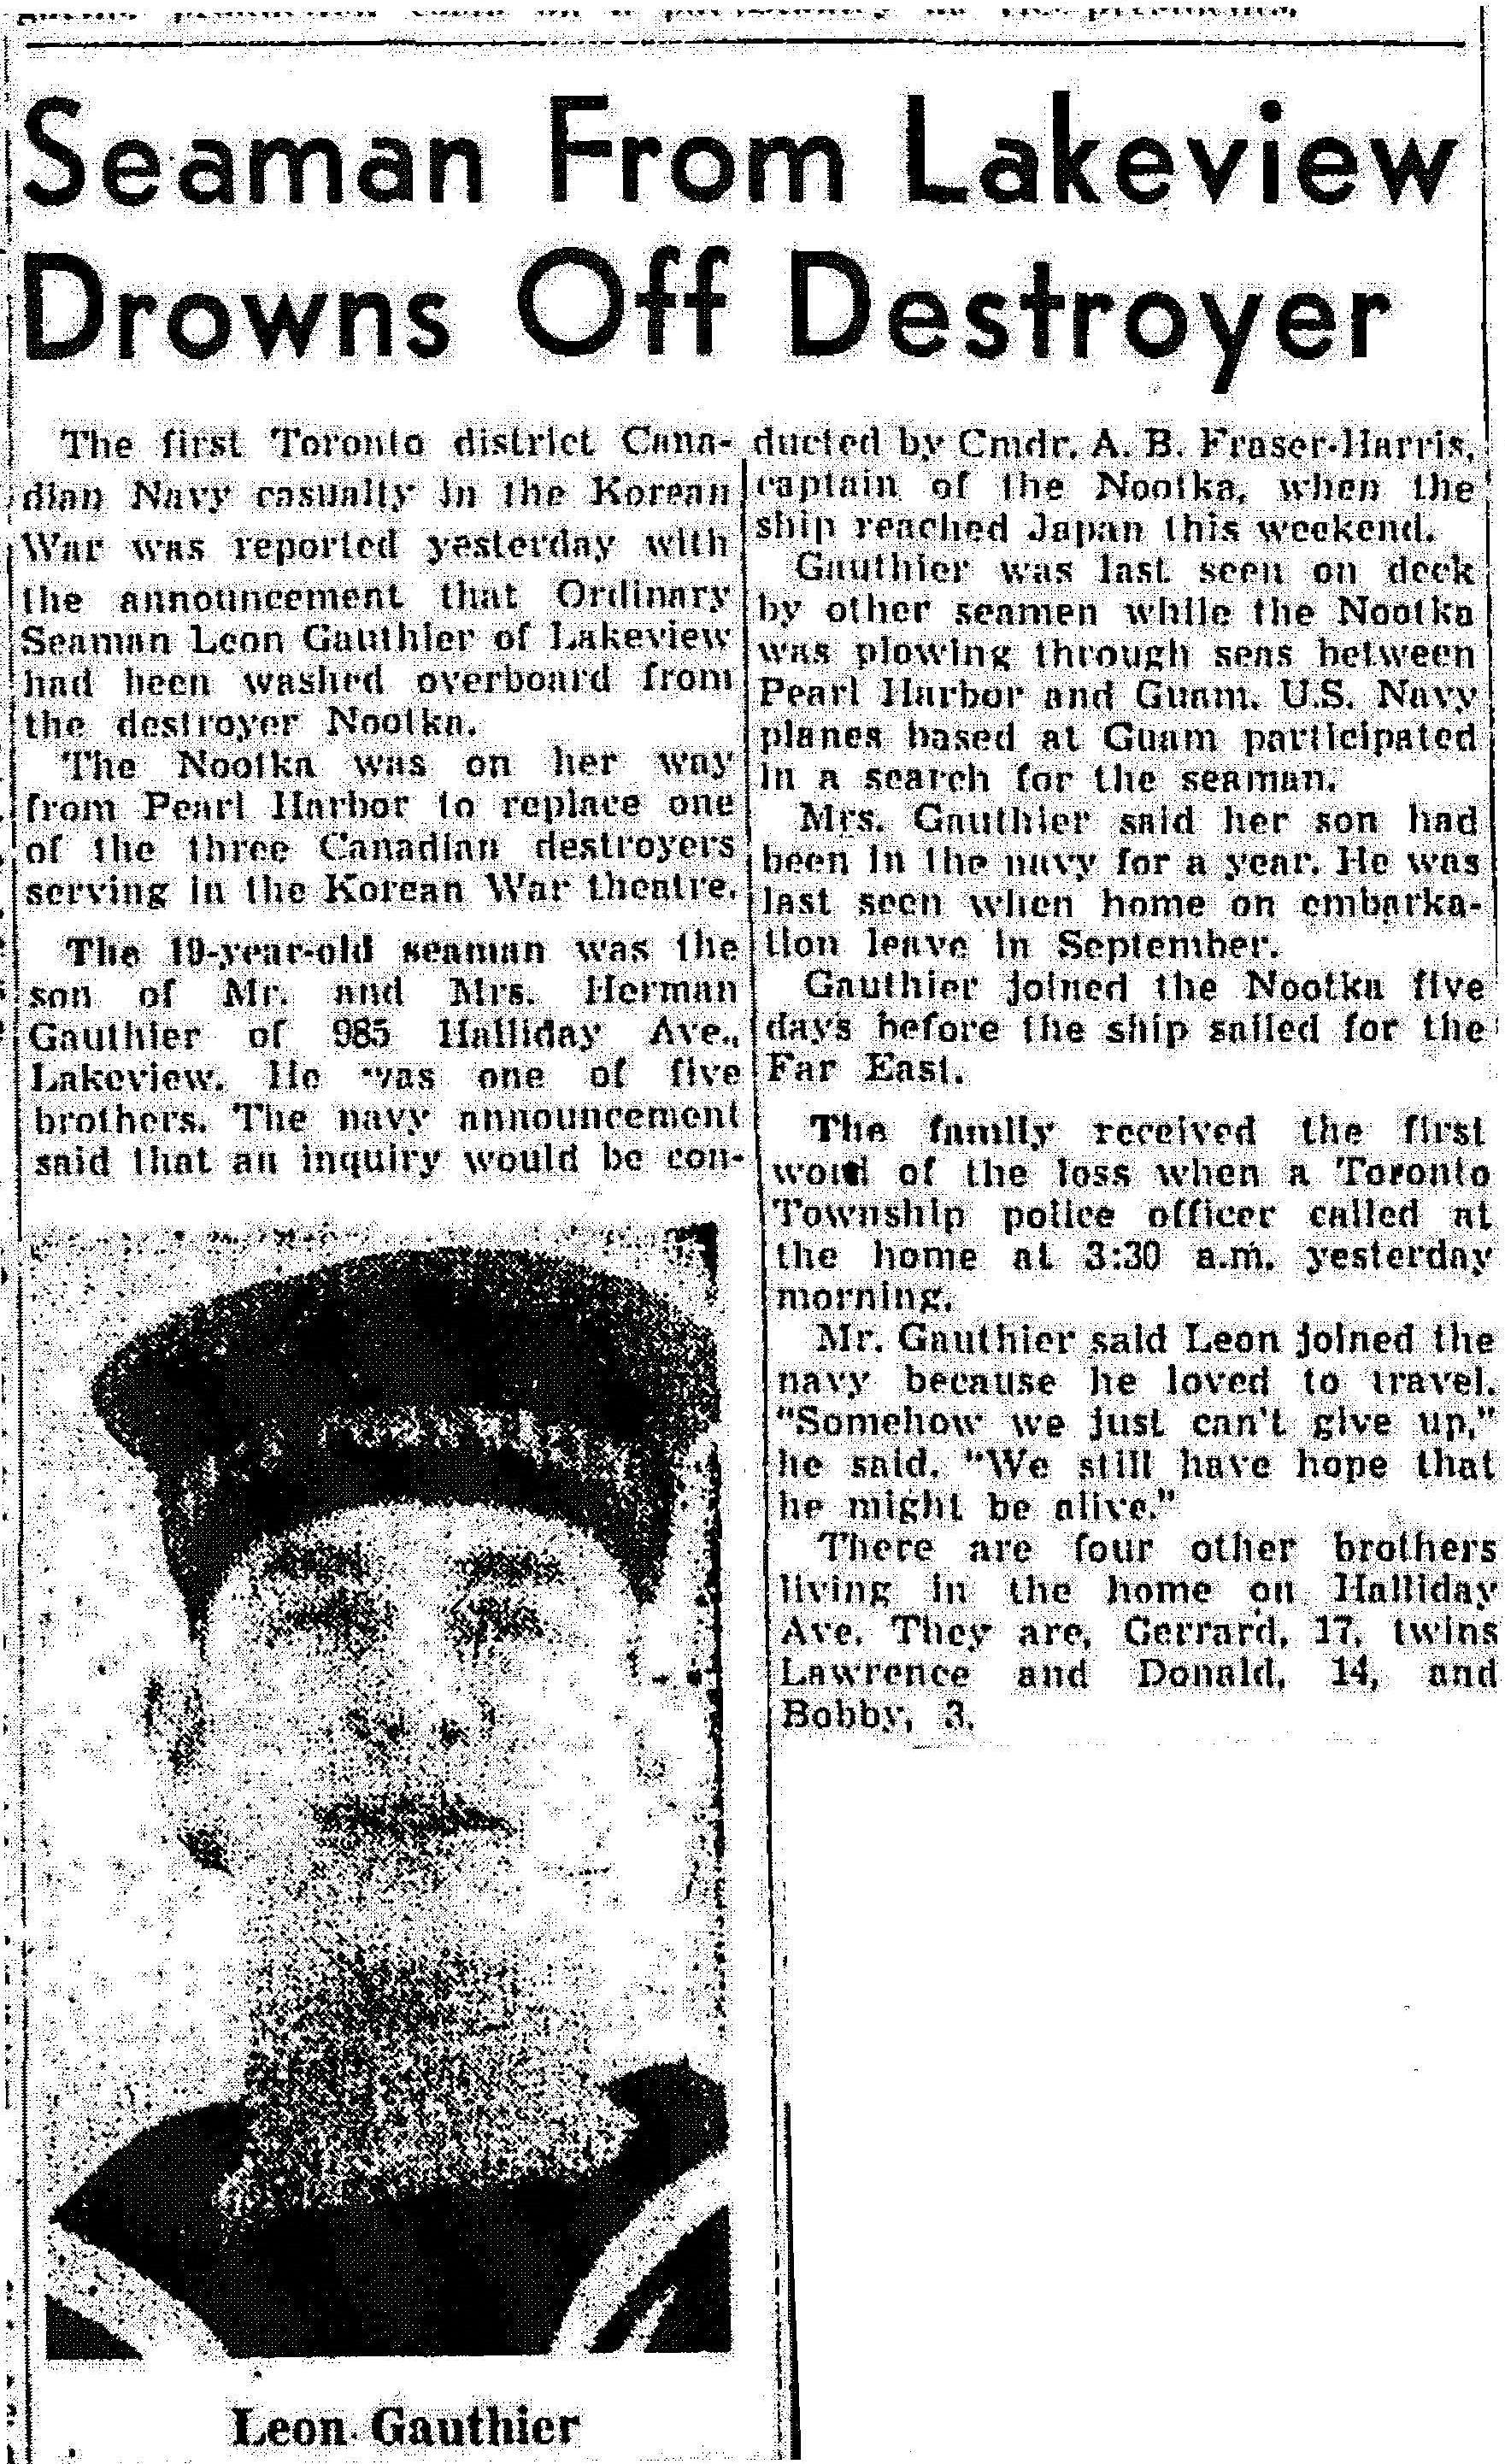 Newspaper Clipping– This news report appeared in the Globe and Mail newspaper, at page 5, on January 13, 1951.  (Submitted by Navy League Cadet Corps CHAMBLY, Barrie, Ontario.)